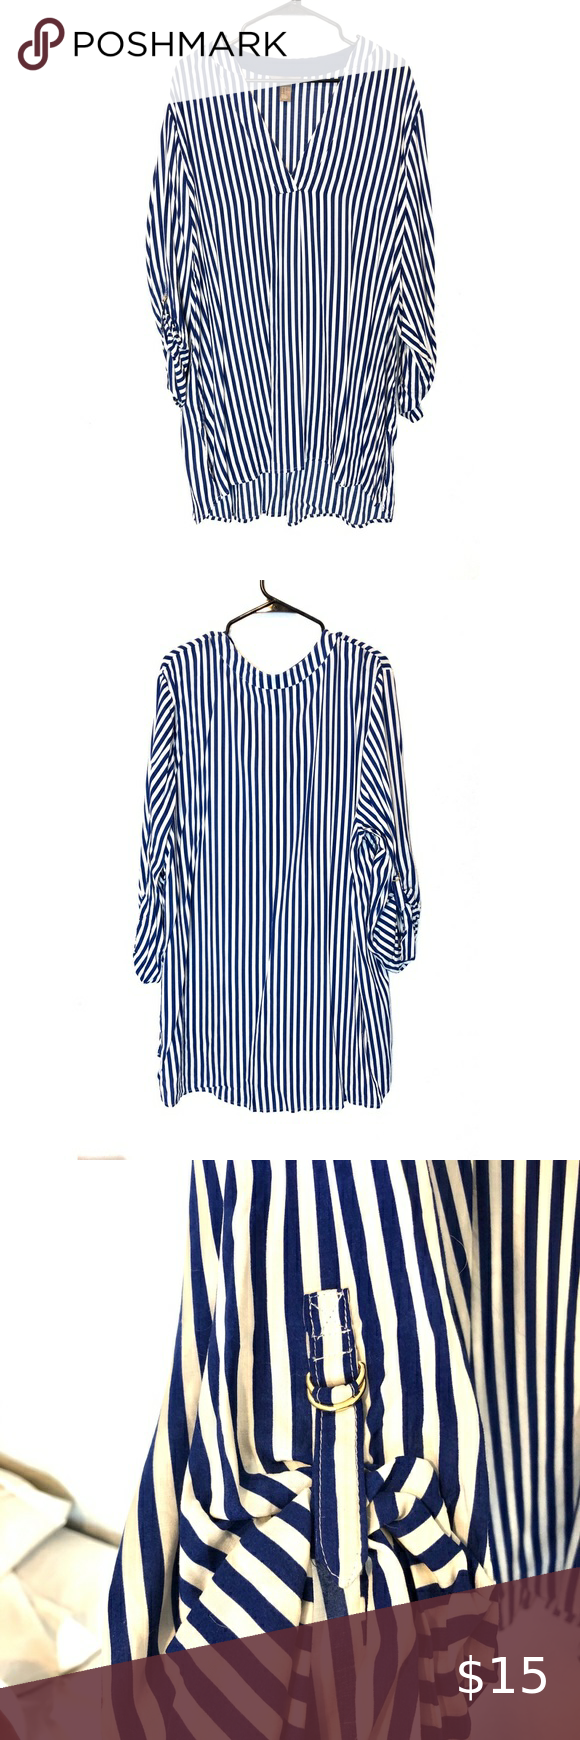 Photo of H&M Striped Tunic Plus Size H&M stripe tunic plus size – worn once for photo sho…